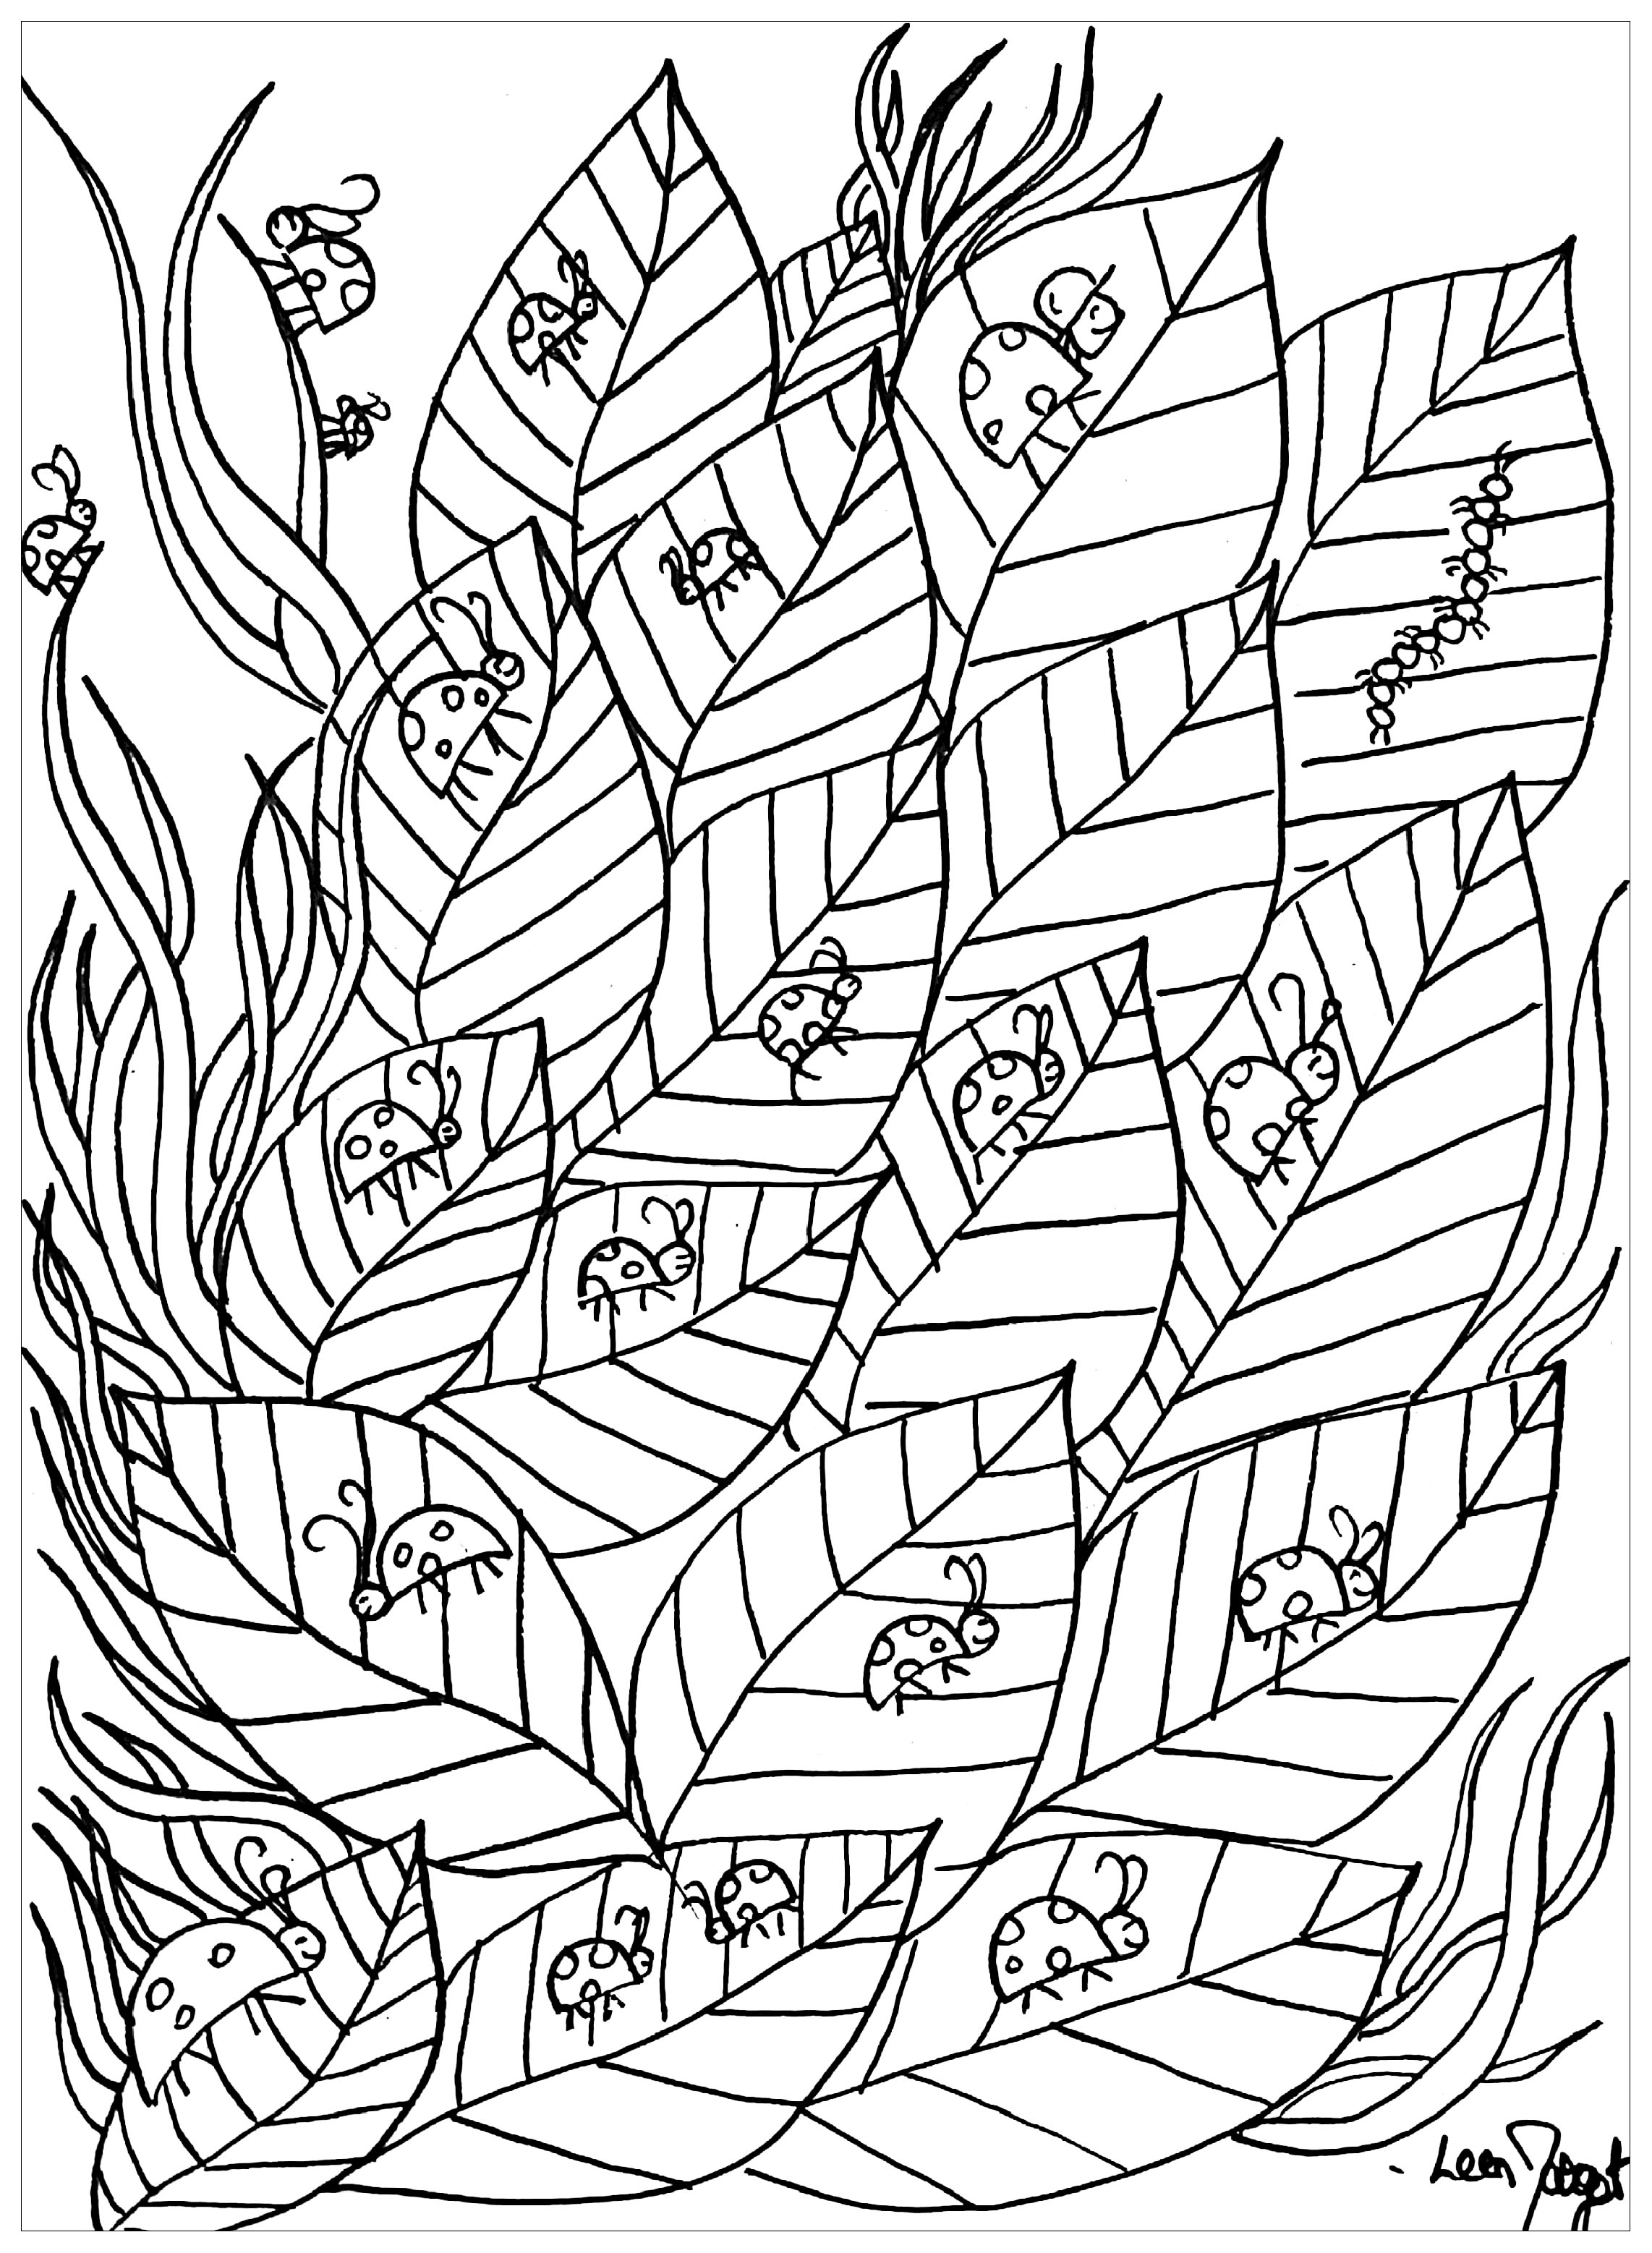 Ladybugs on leaves - Butterflies & insects Adult Coloring Pages